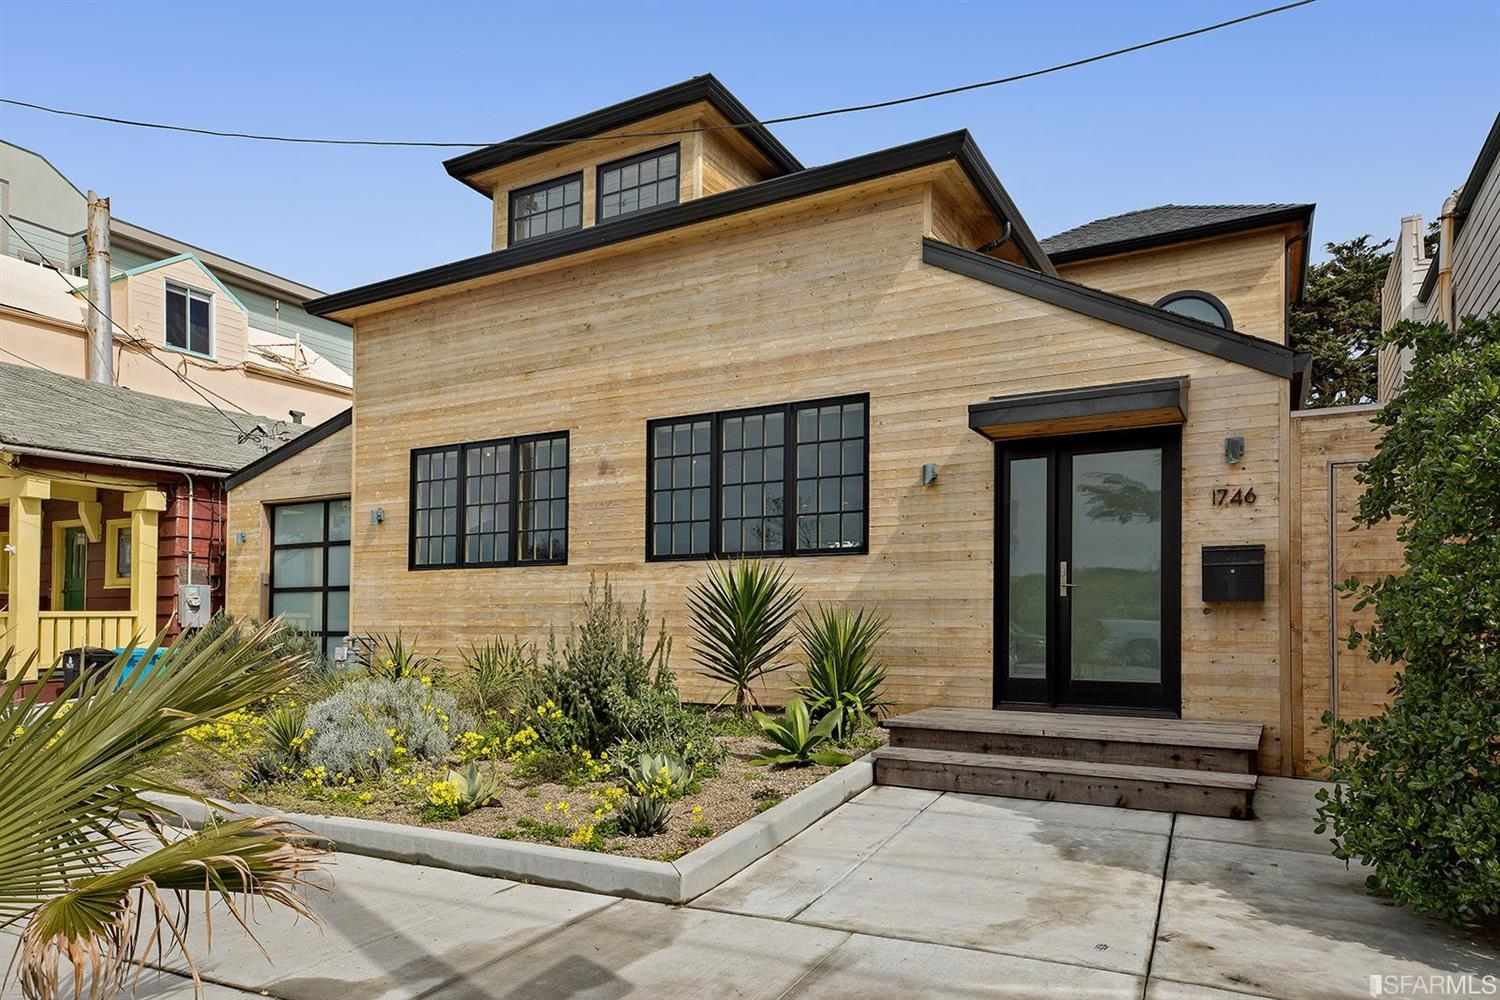 Adolf Sutro Ocean Beach Carriage House Gets Major Facelift And $2.6M Price Tag